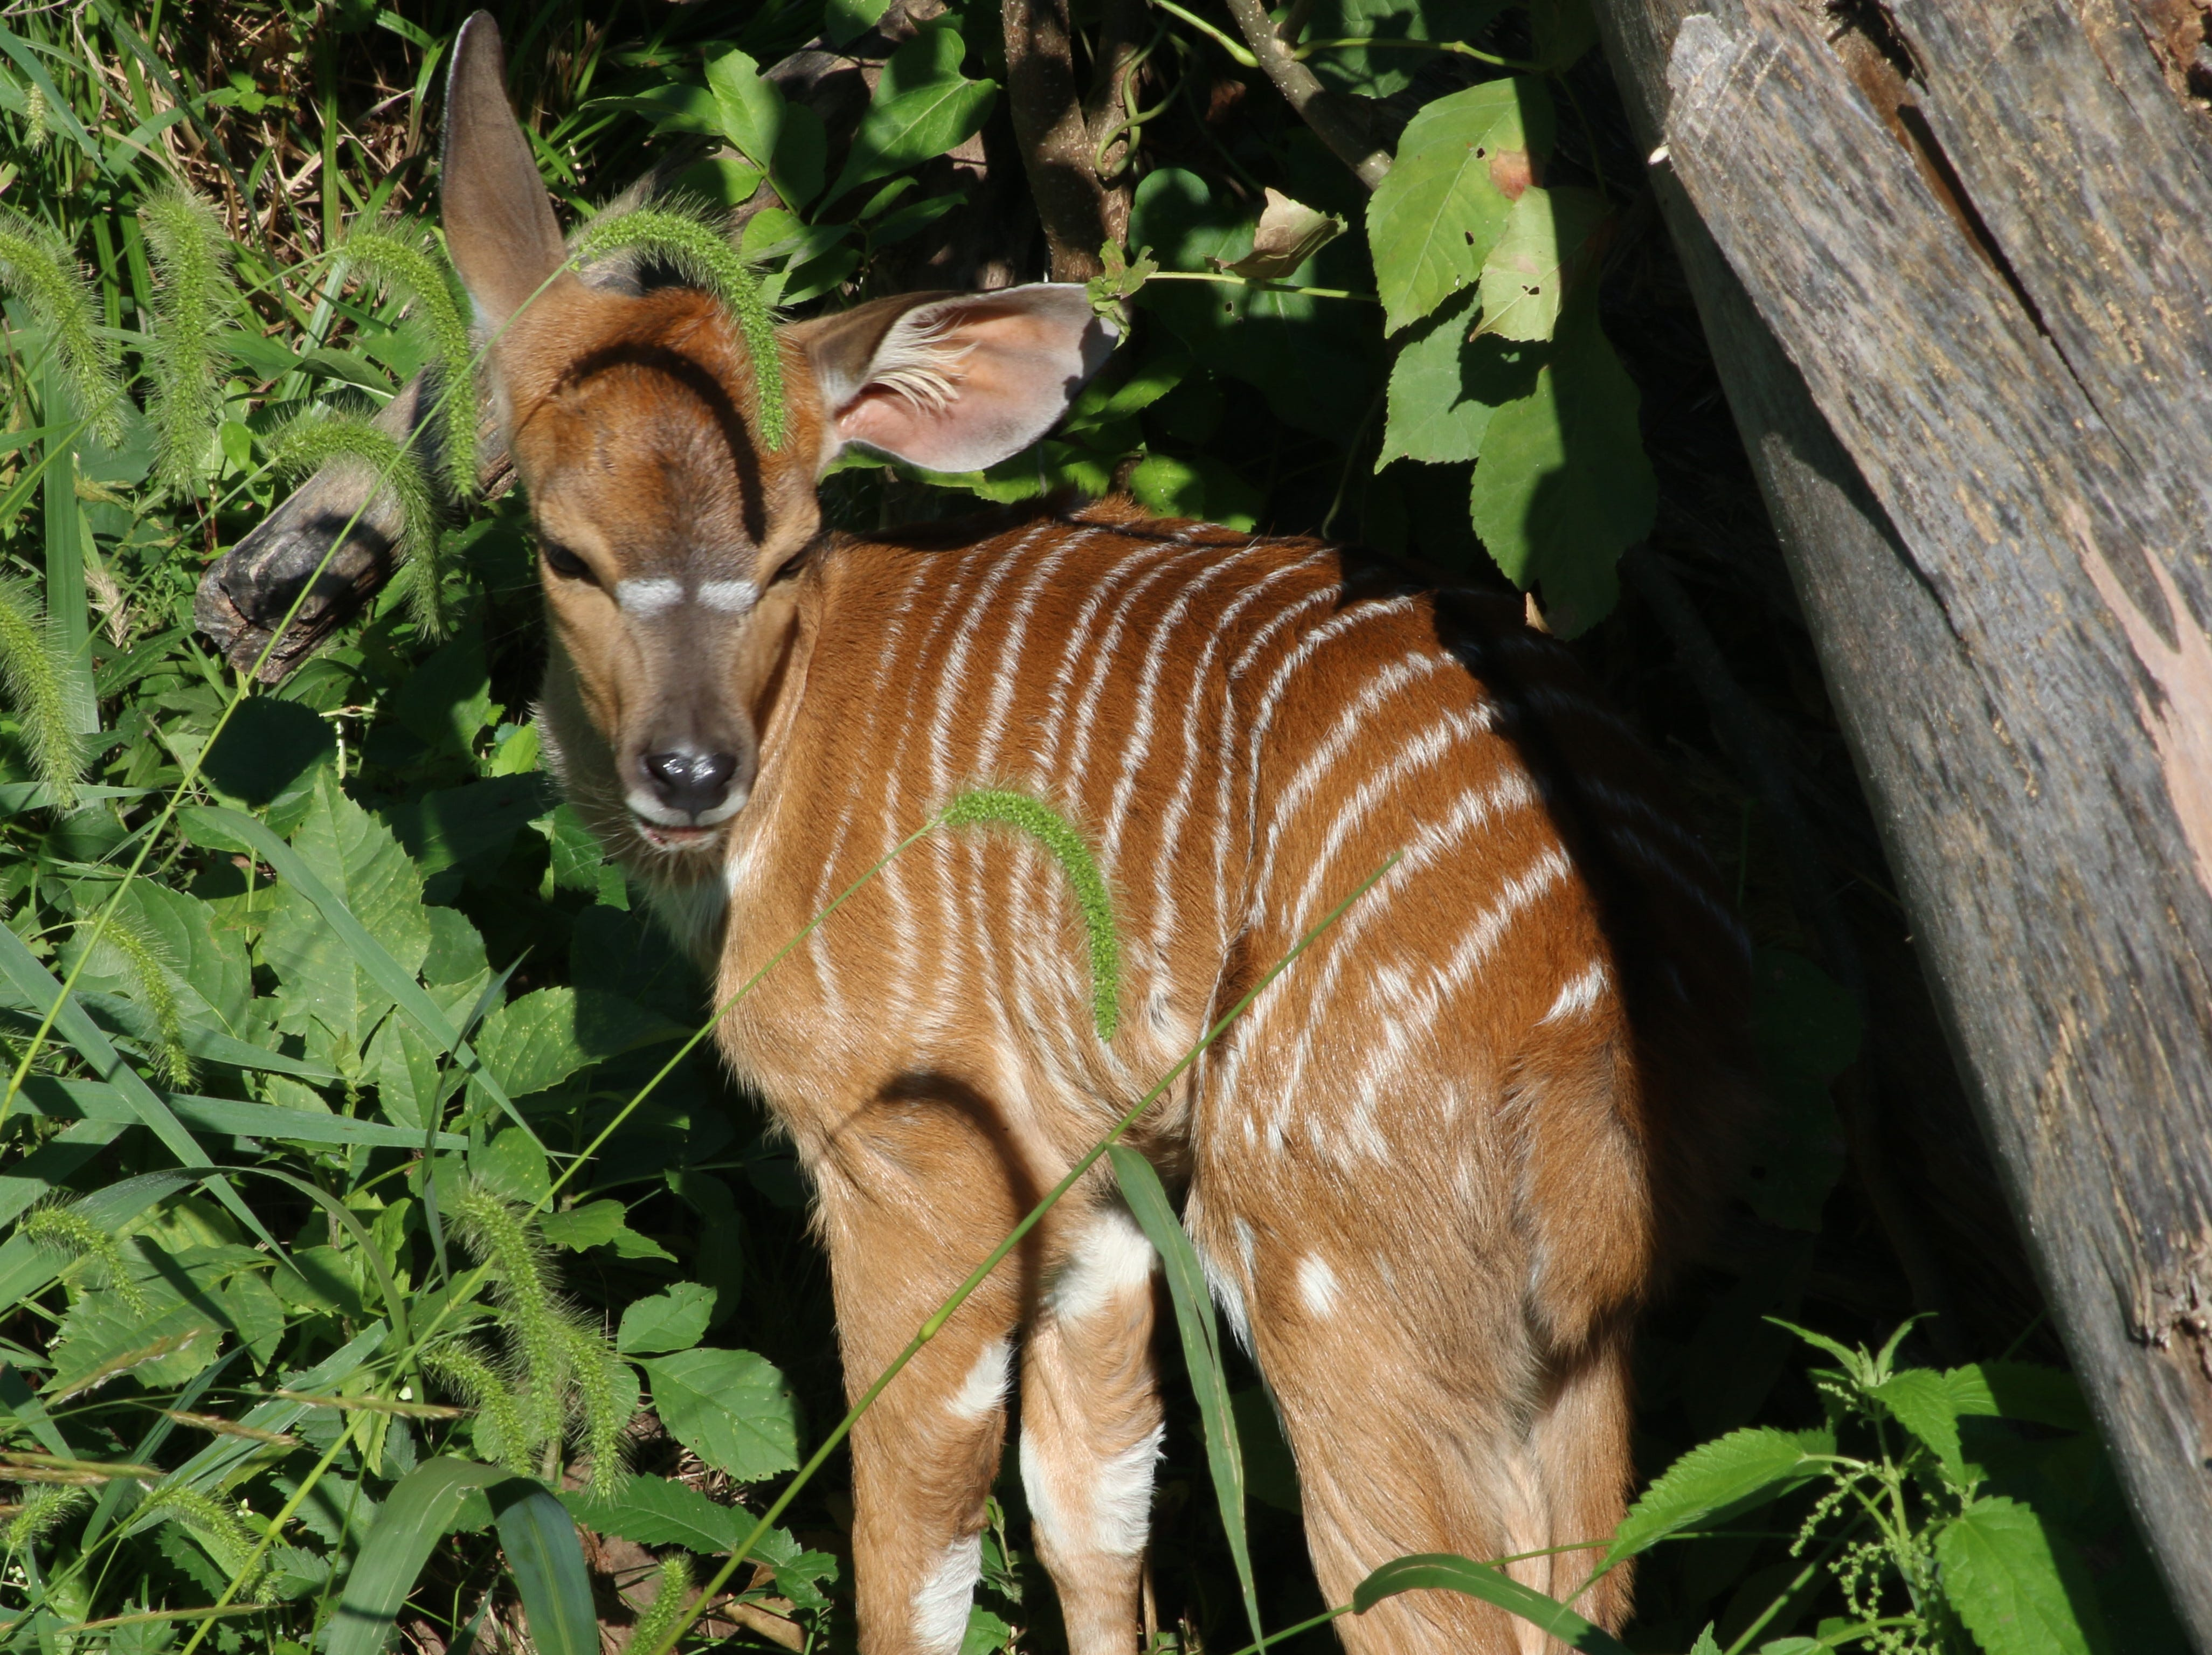 Blank Park Zoo announced Friday that a nyala calf and six flamingo chicks have been born in the last month. The female nyala calf is named Hazel. The flamingos are not yet named.